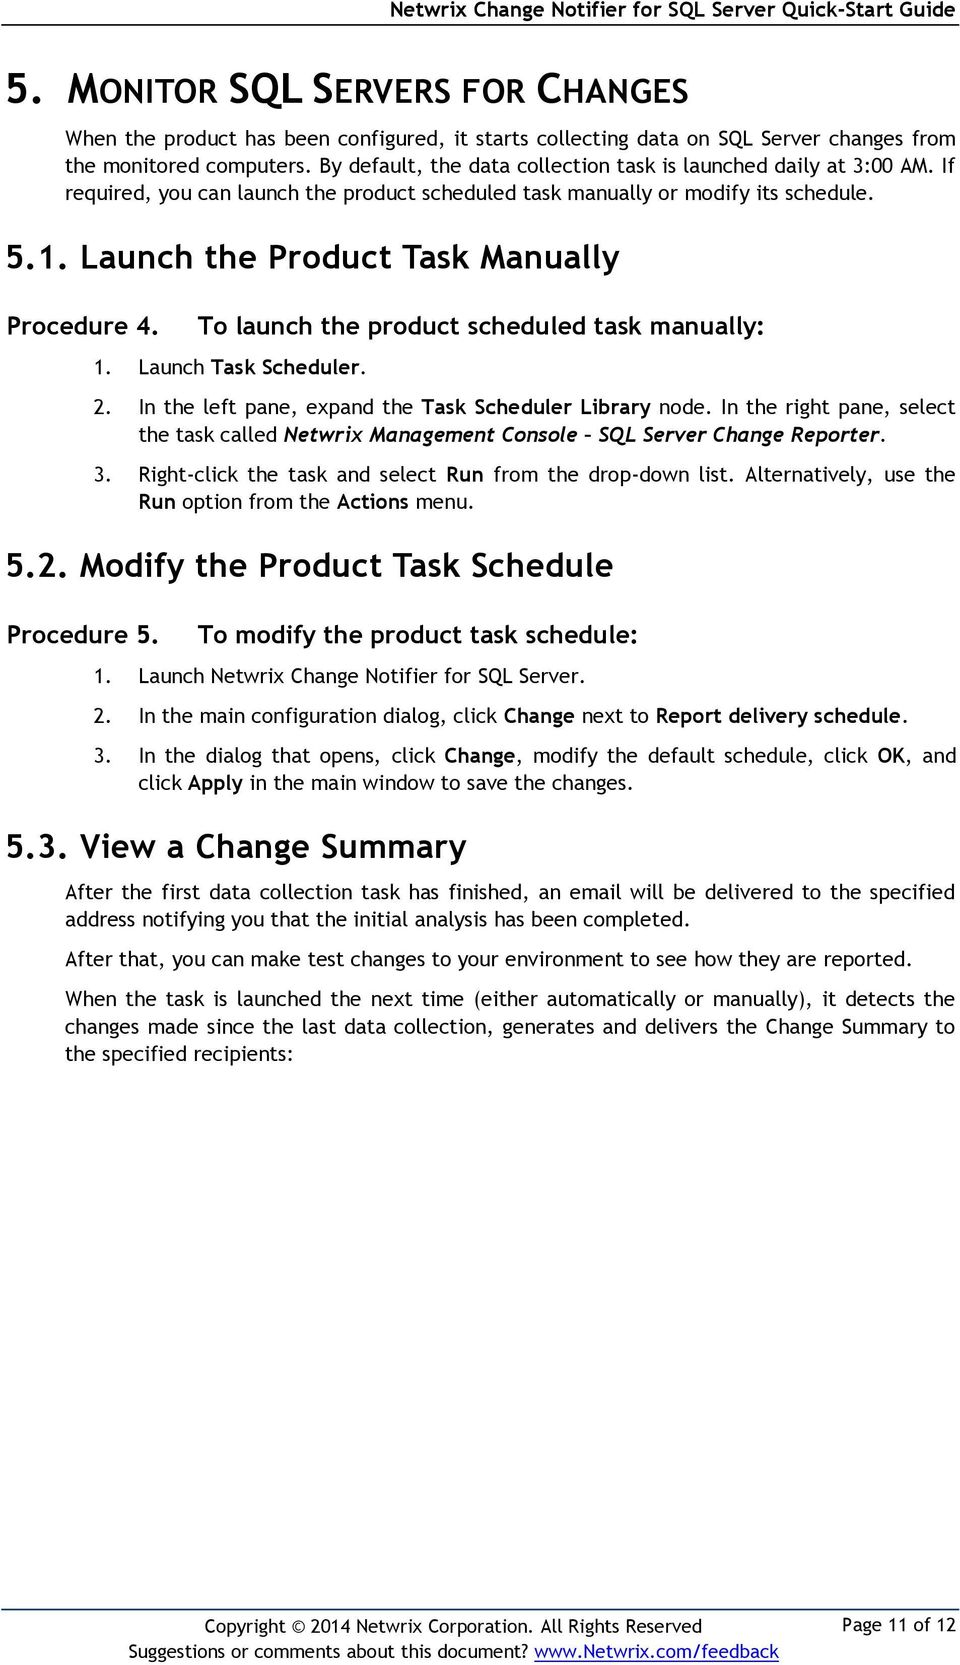 Launch the Product Task Manually Procedure 4. To launch the product scheduled task manually: 1. Launch Task Scheduler. 2. In the left pane, expand the Task Scheduler Library node.